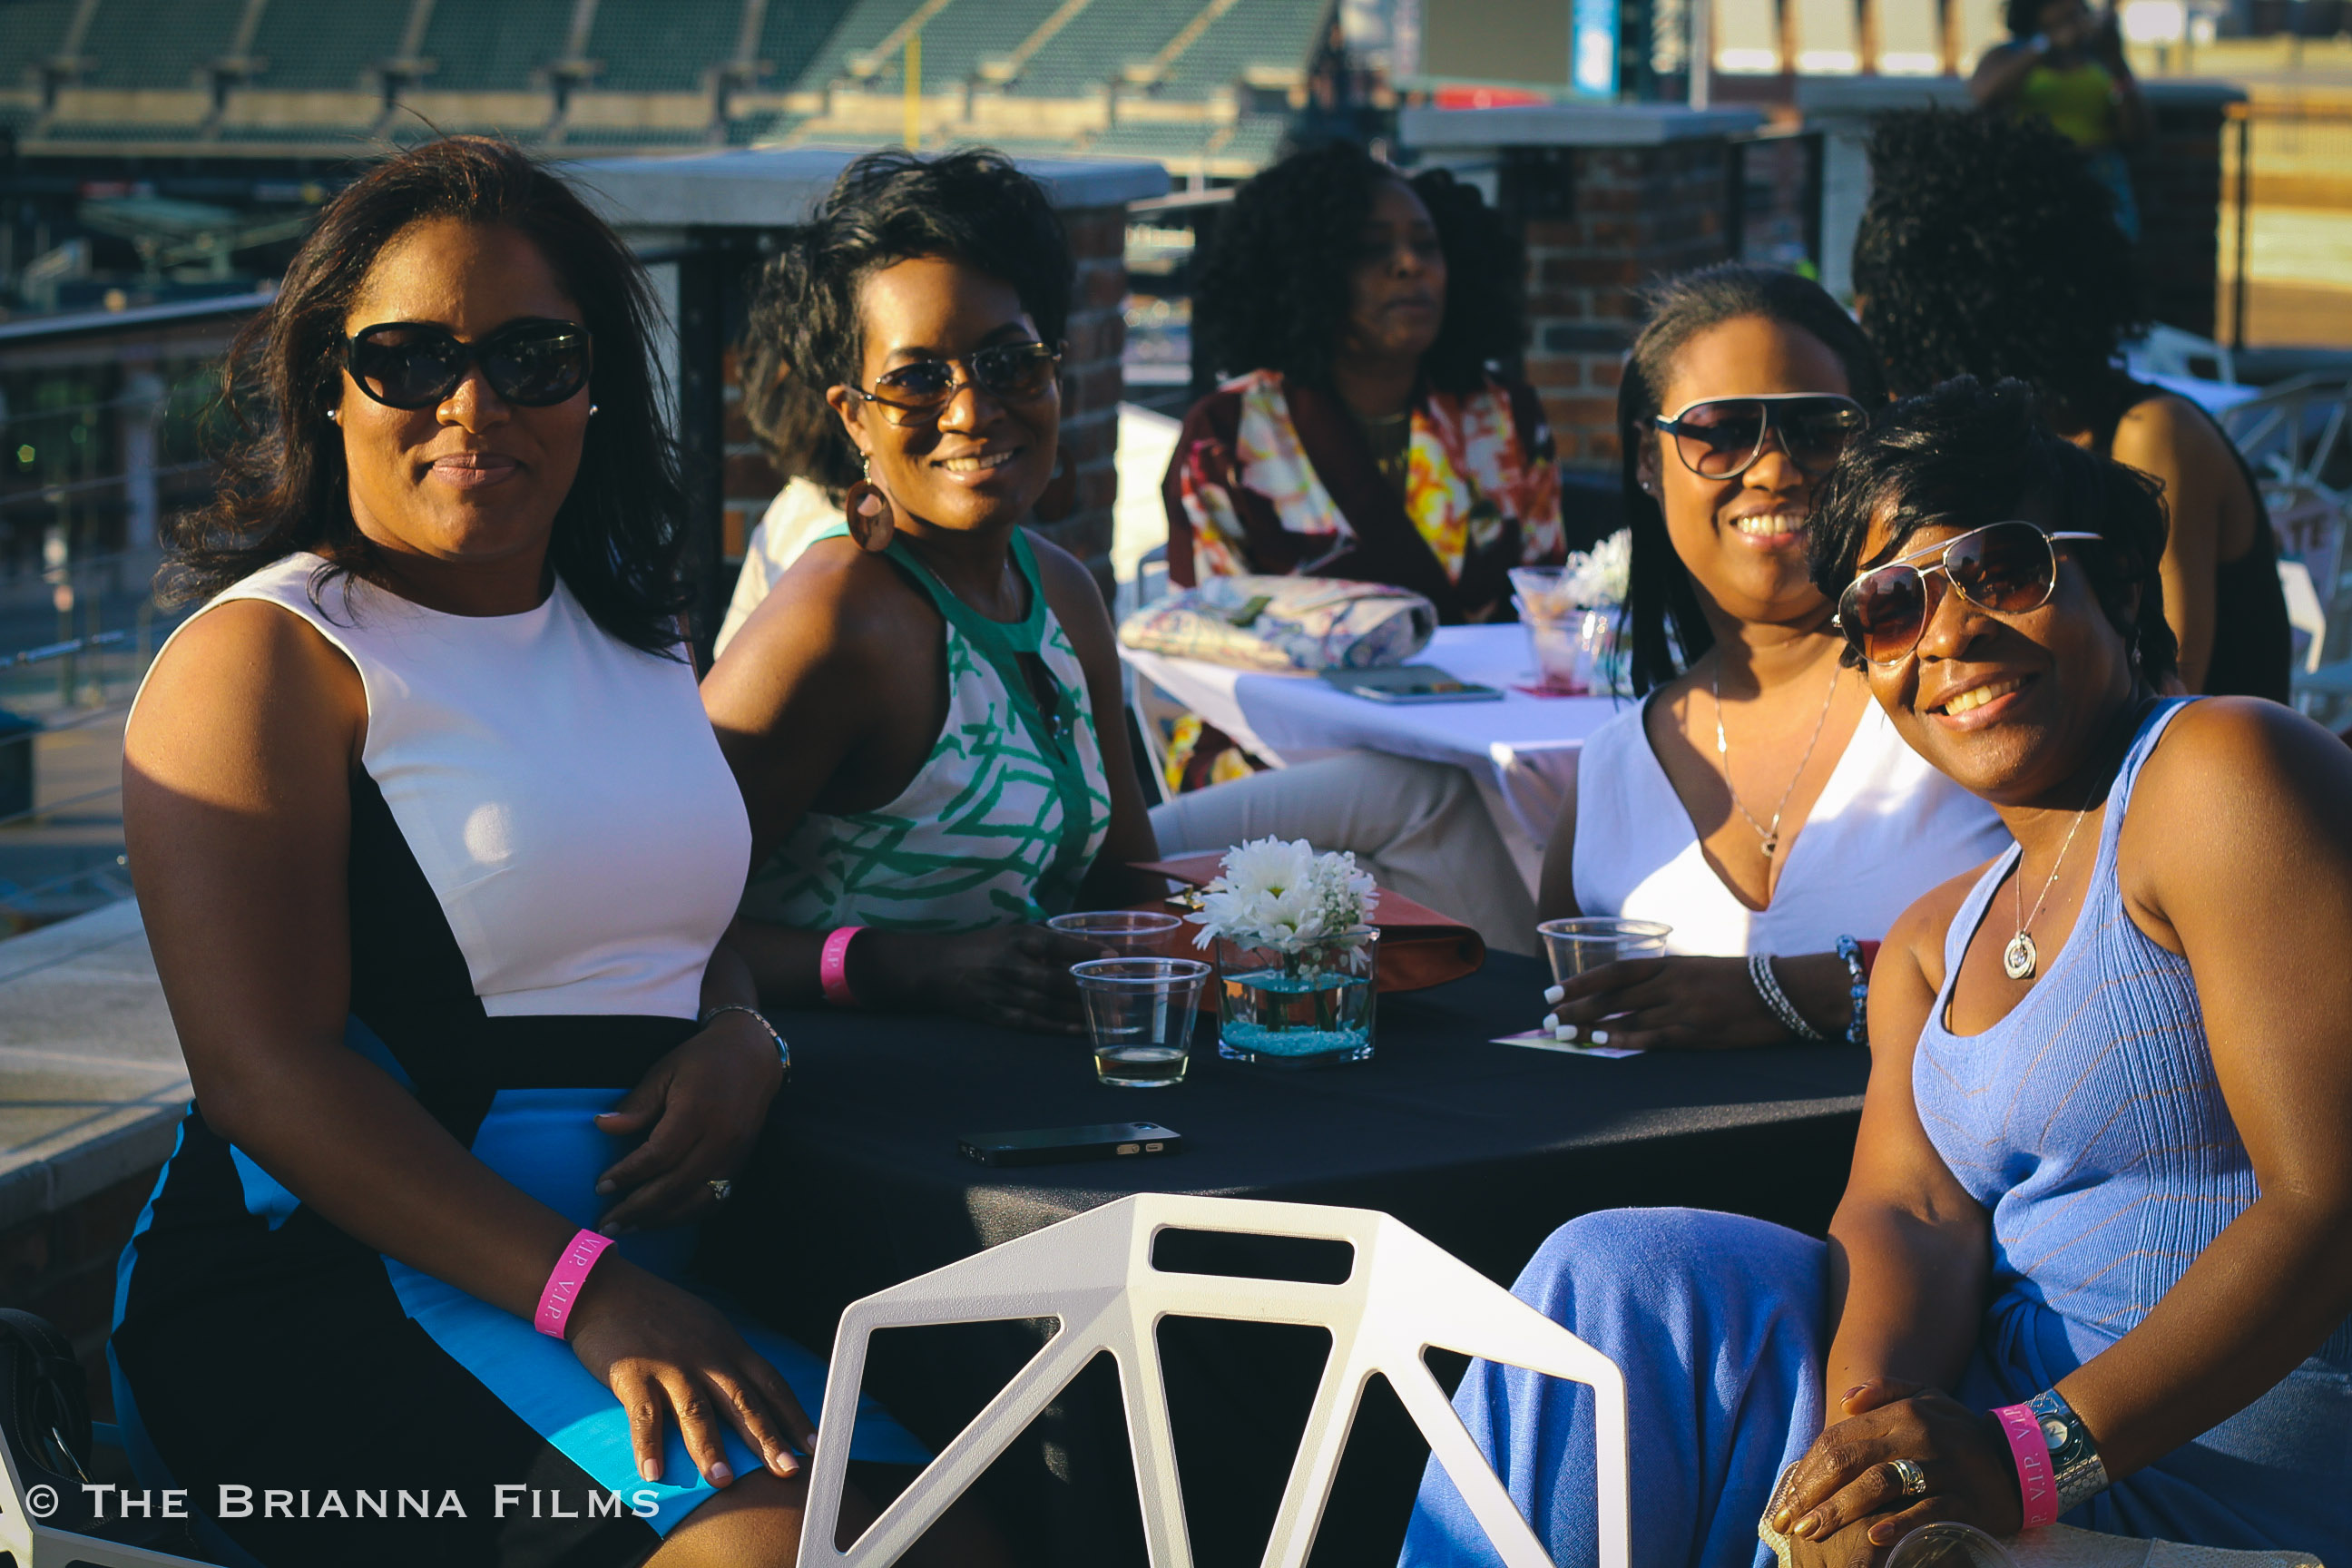 Beautiful guests enjoying themselves